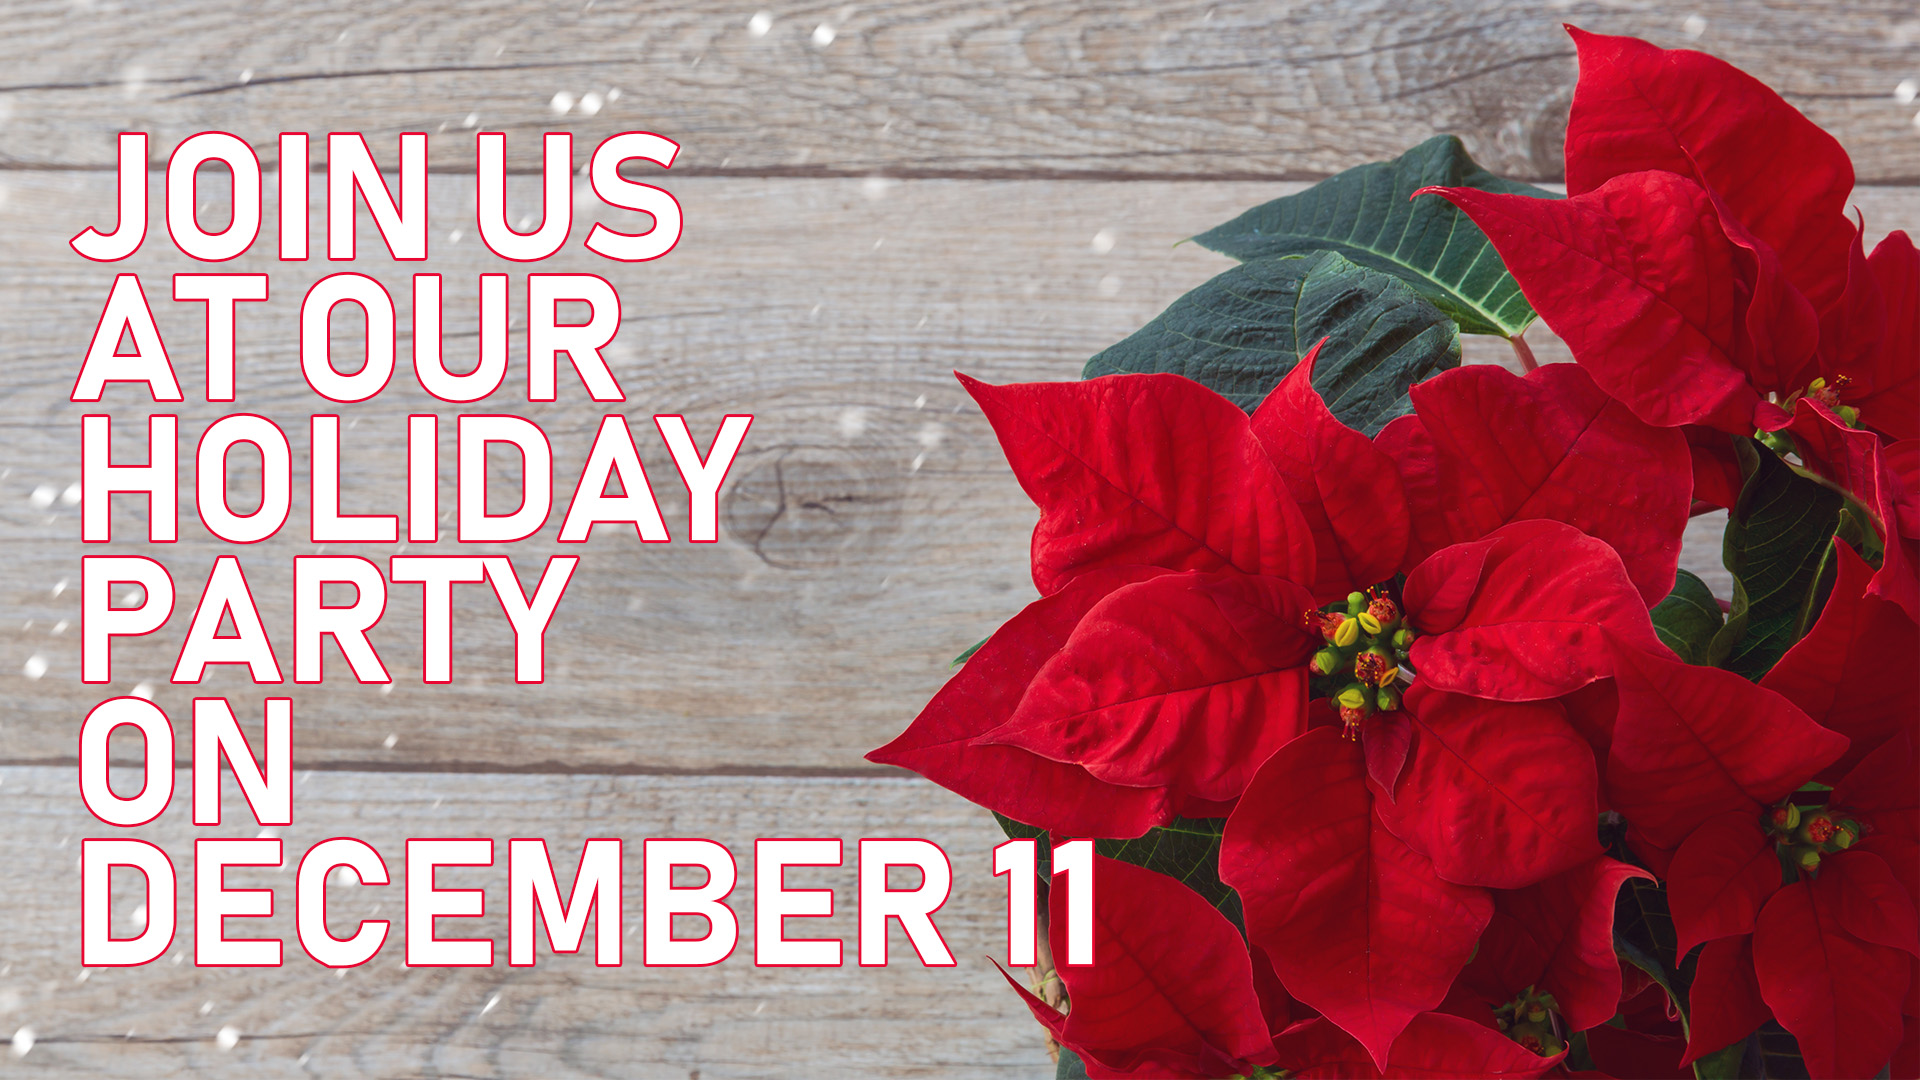 Join Us at Our Holiday Party on December 11